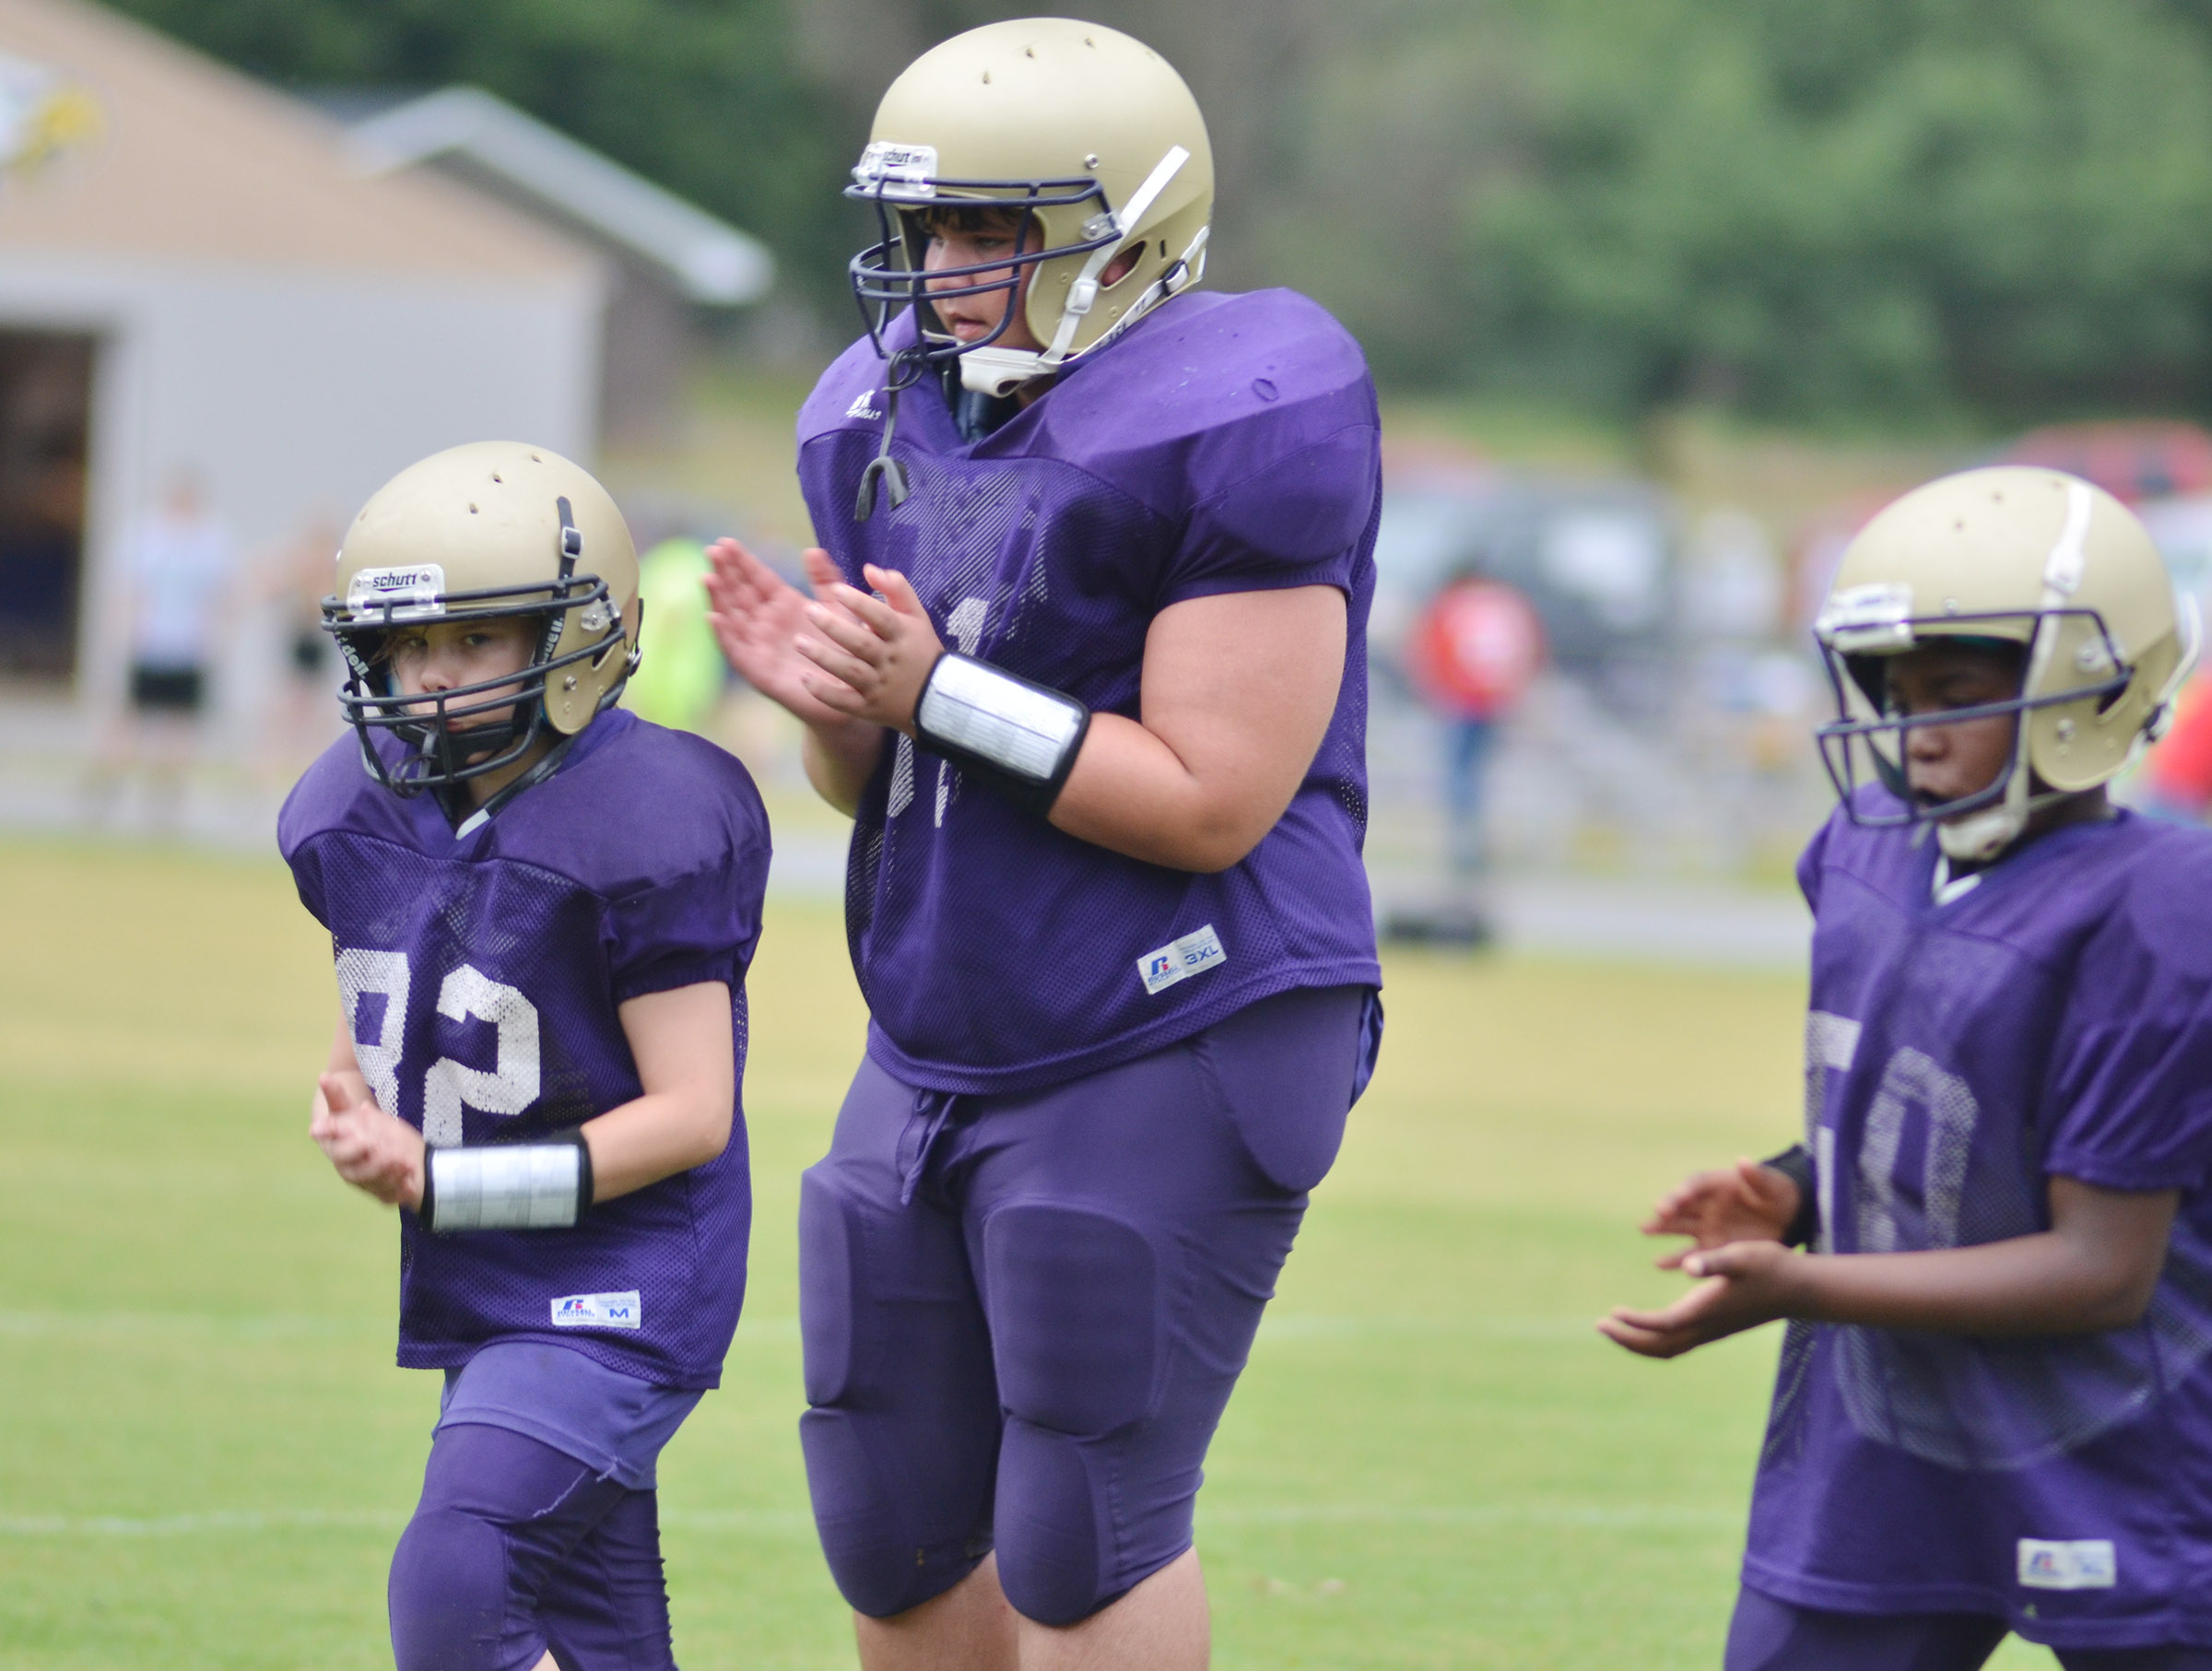 Campbellsville Elementary School fifth-grader Deason Smith runs during a warmup drill.